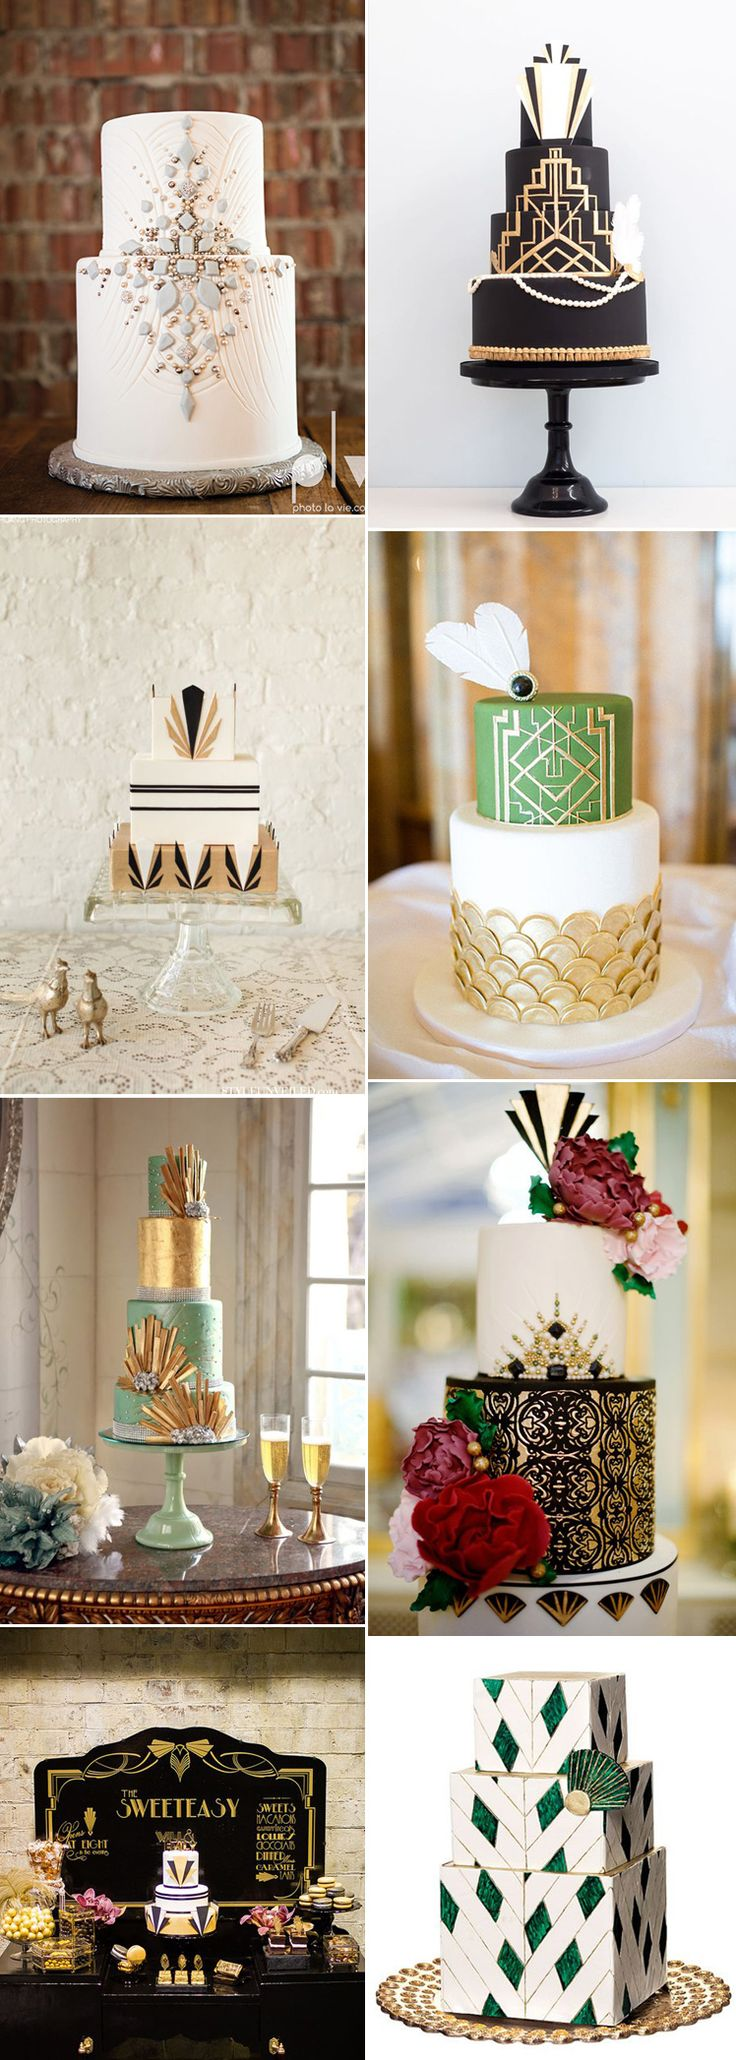 160 best Great Gatsby Inspired Vintage Wedding Ideas images on ...